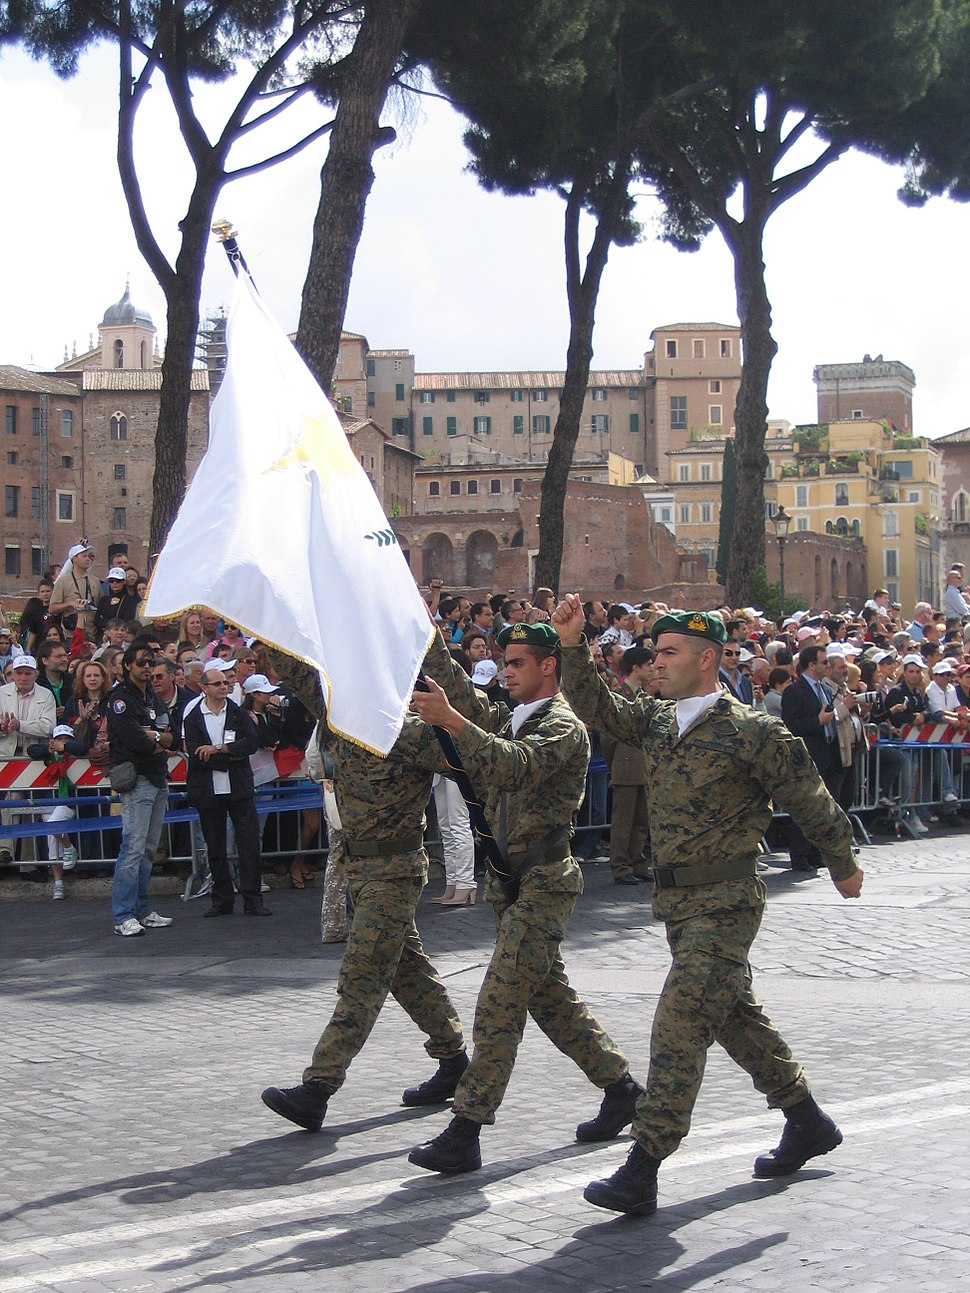 Cypriot Army color guard in parade